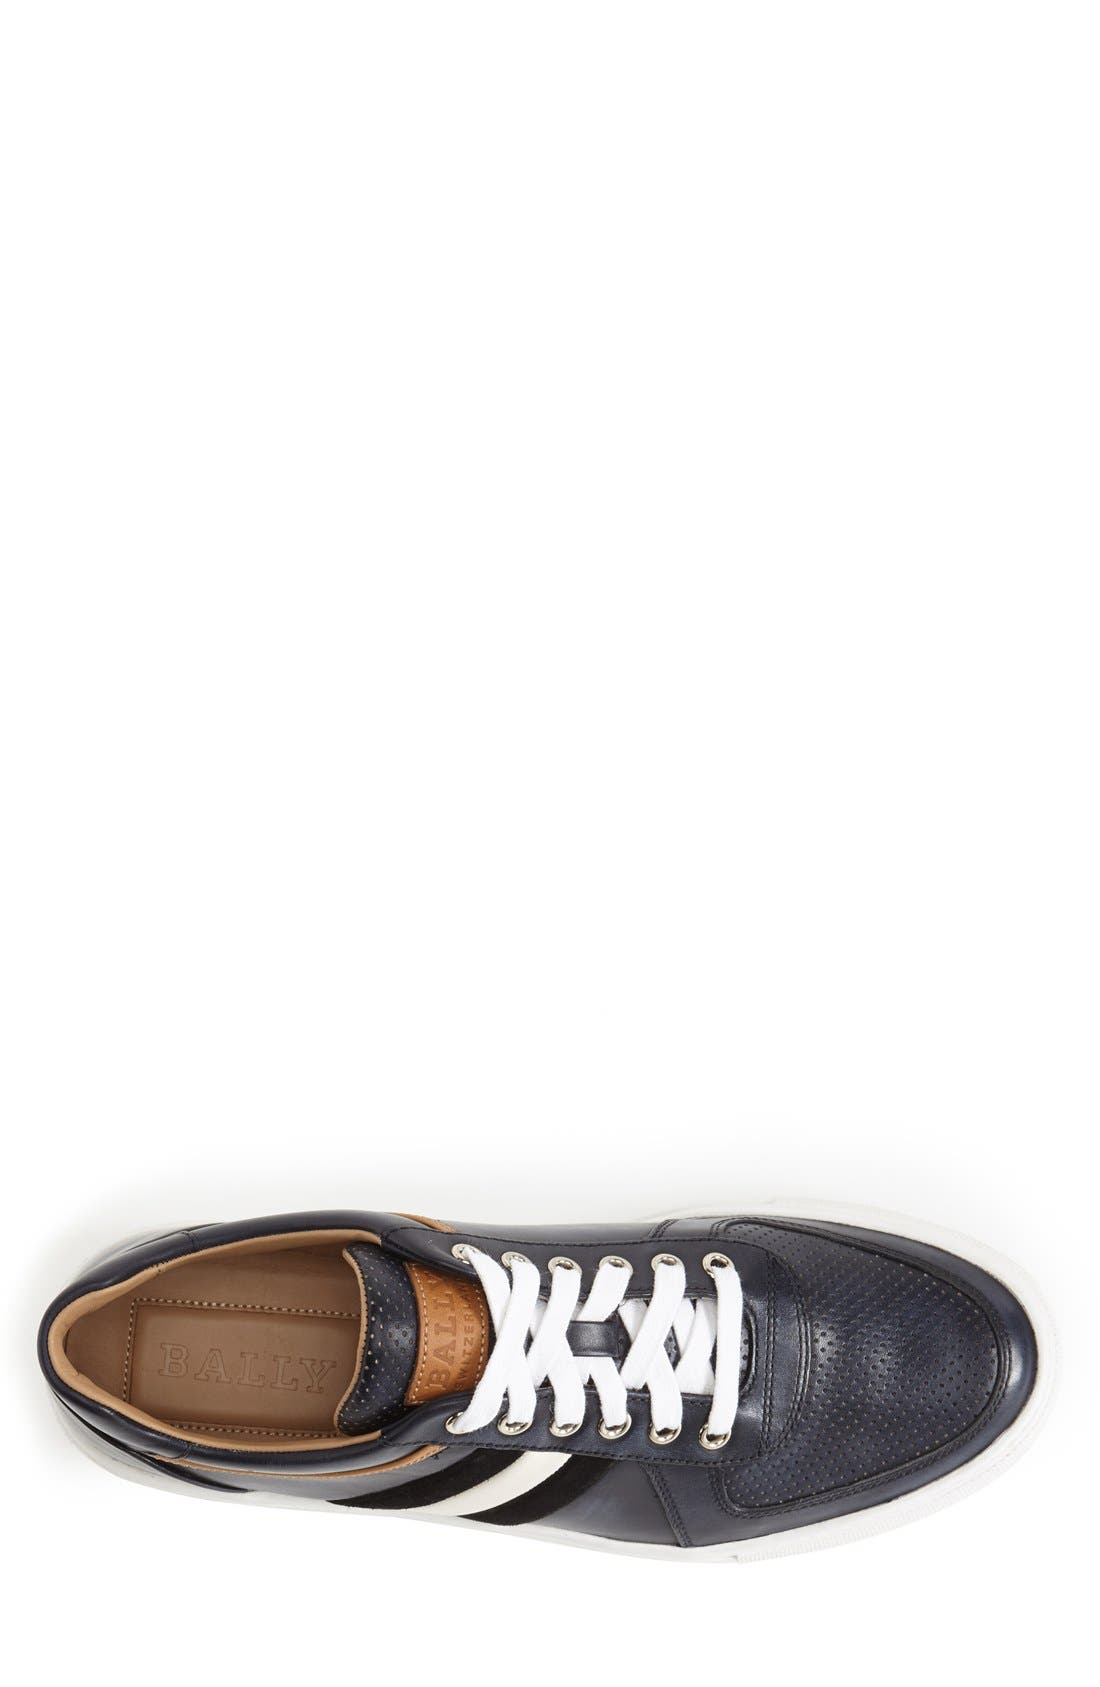 Alternate Image 3  - Bally 'Heider' Leather Sneaker (Men)